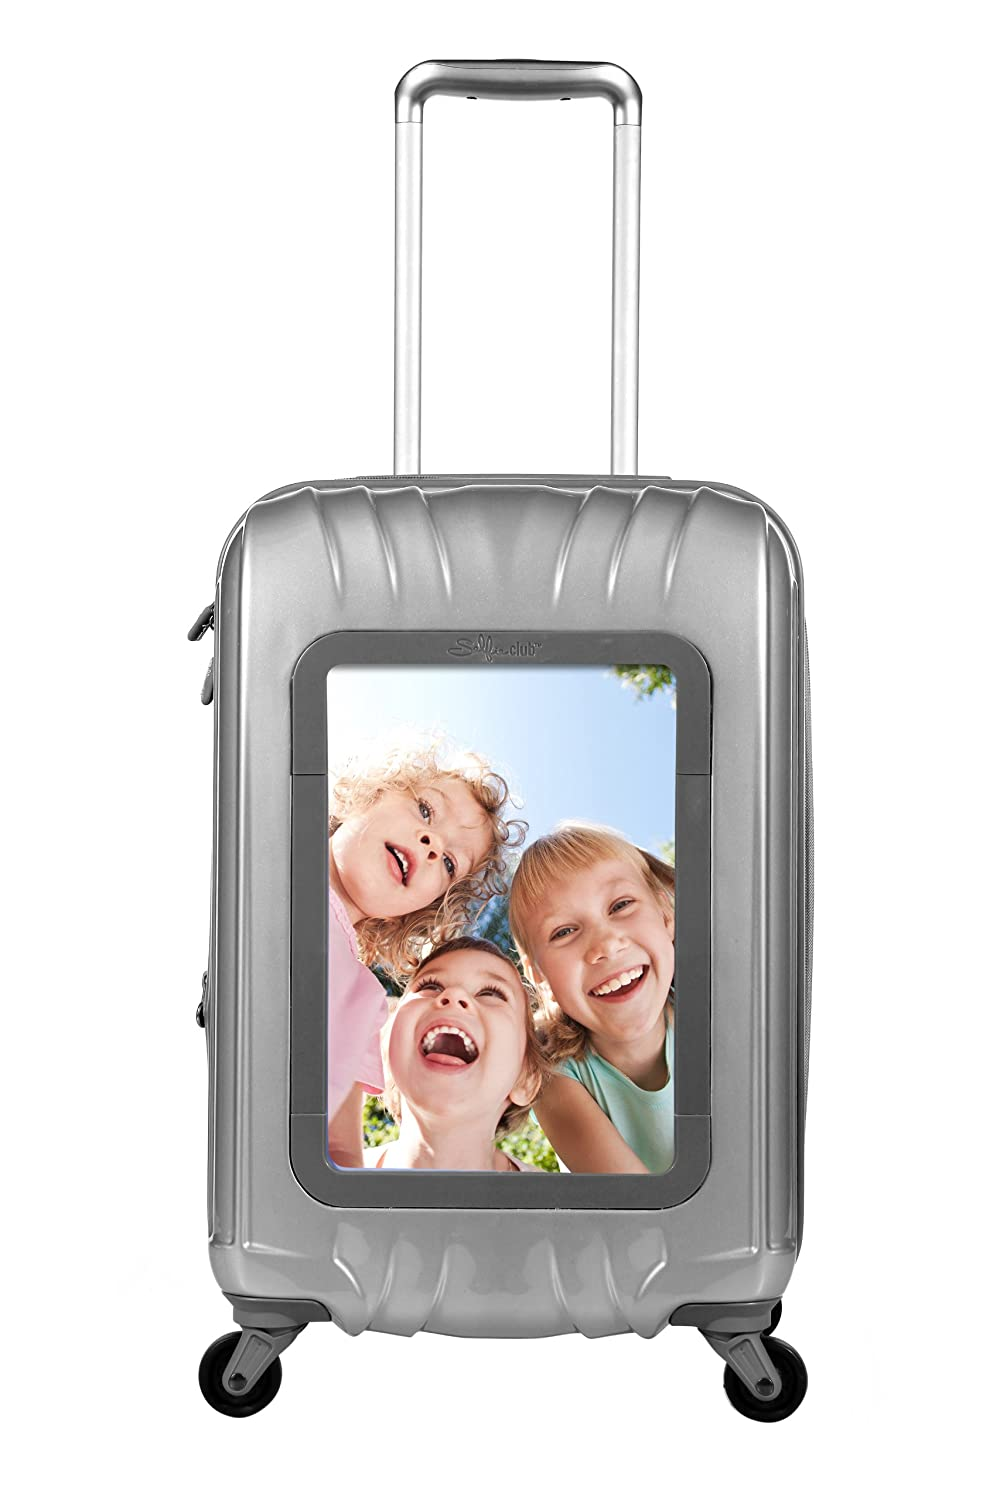 Selfie Club 20 Inch Personalized Carry On with 360 Degree 4 Wheel System, Silver, One Size Travelers Club Luggage SF-41020-010